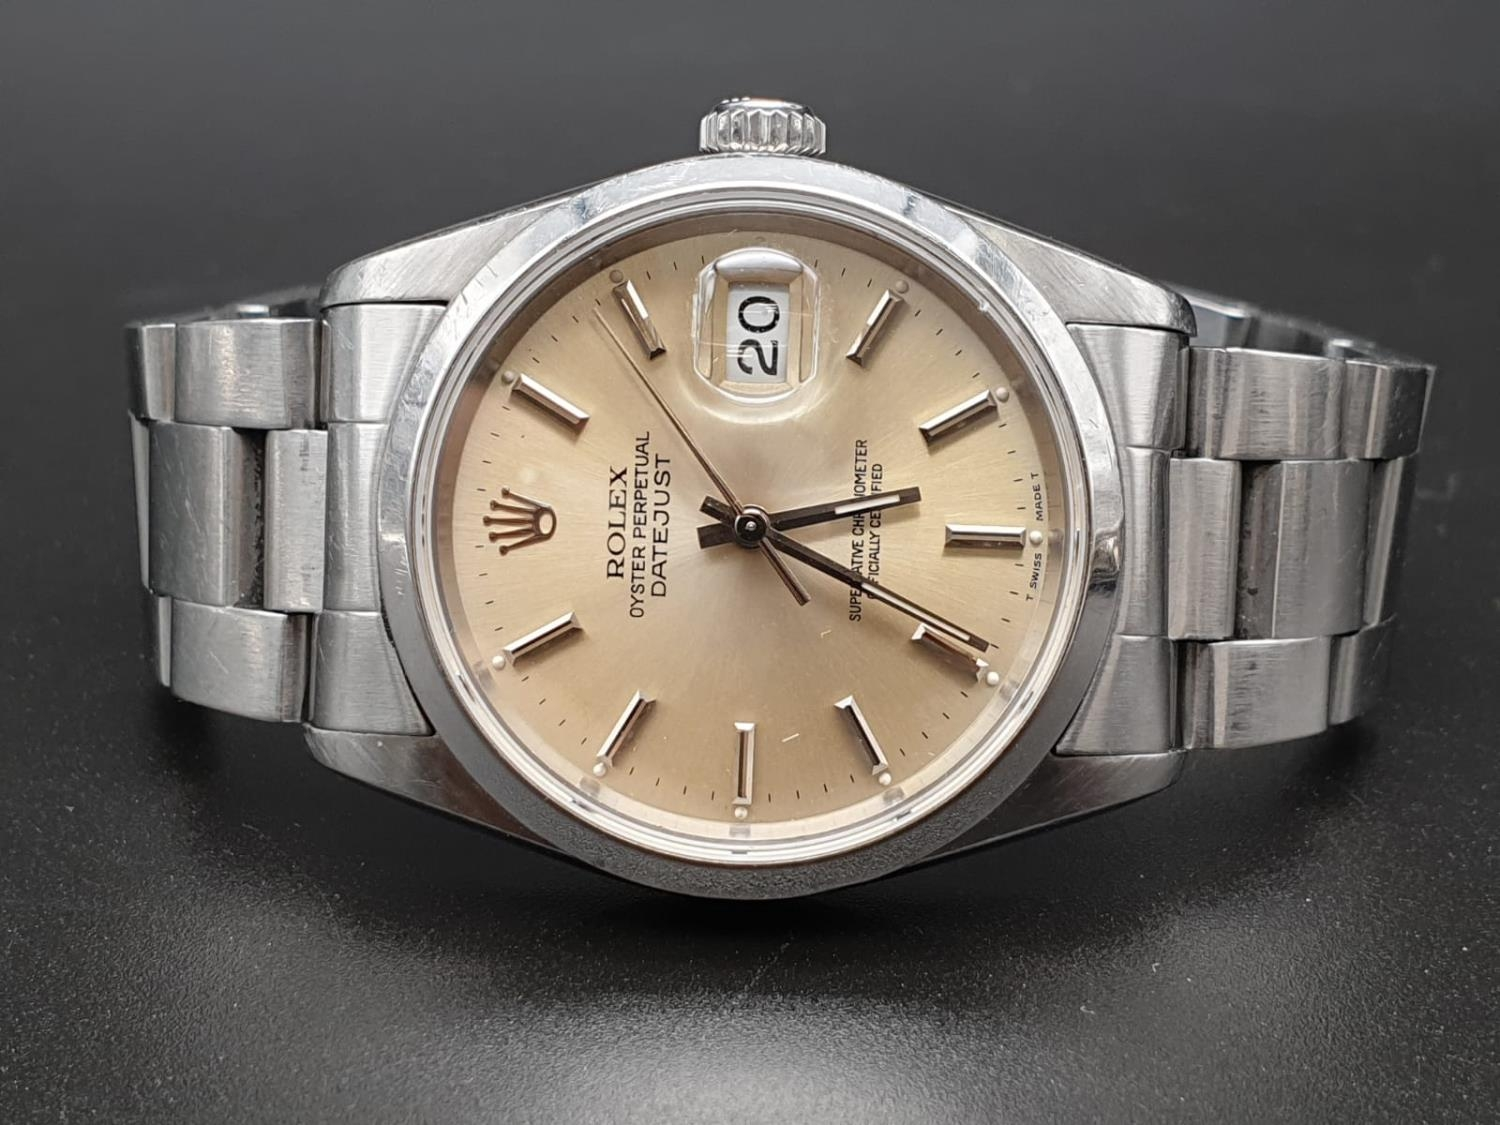 ROLEX OYSTER DATEJUST IN STAINLESS STEEL WITH ATTRACTIVE LIGHT OYSTER FACE, FWO 36MM - Image 4 of 10